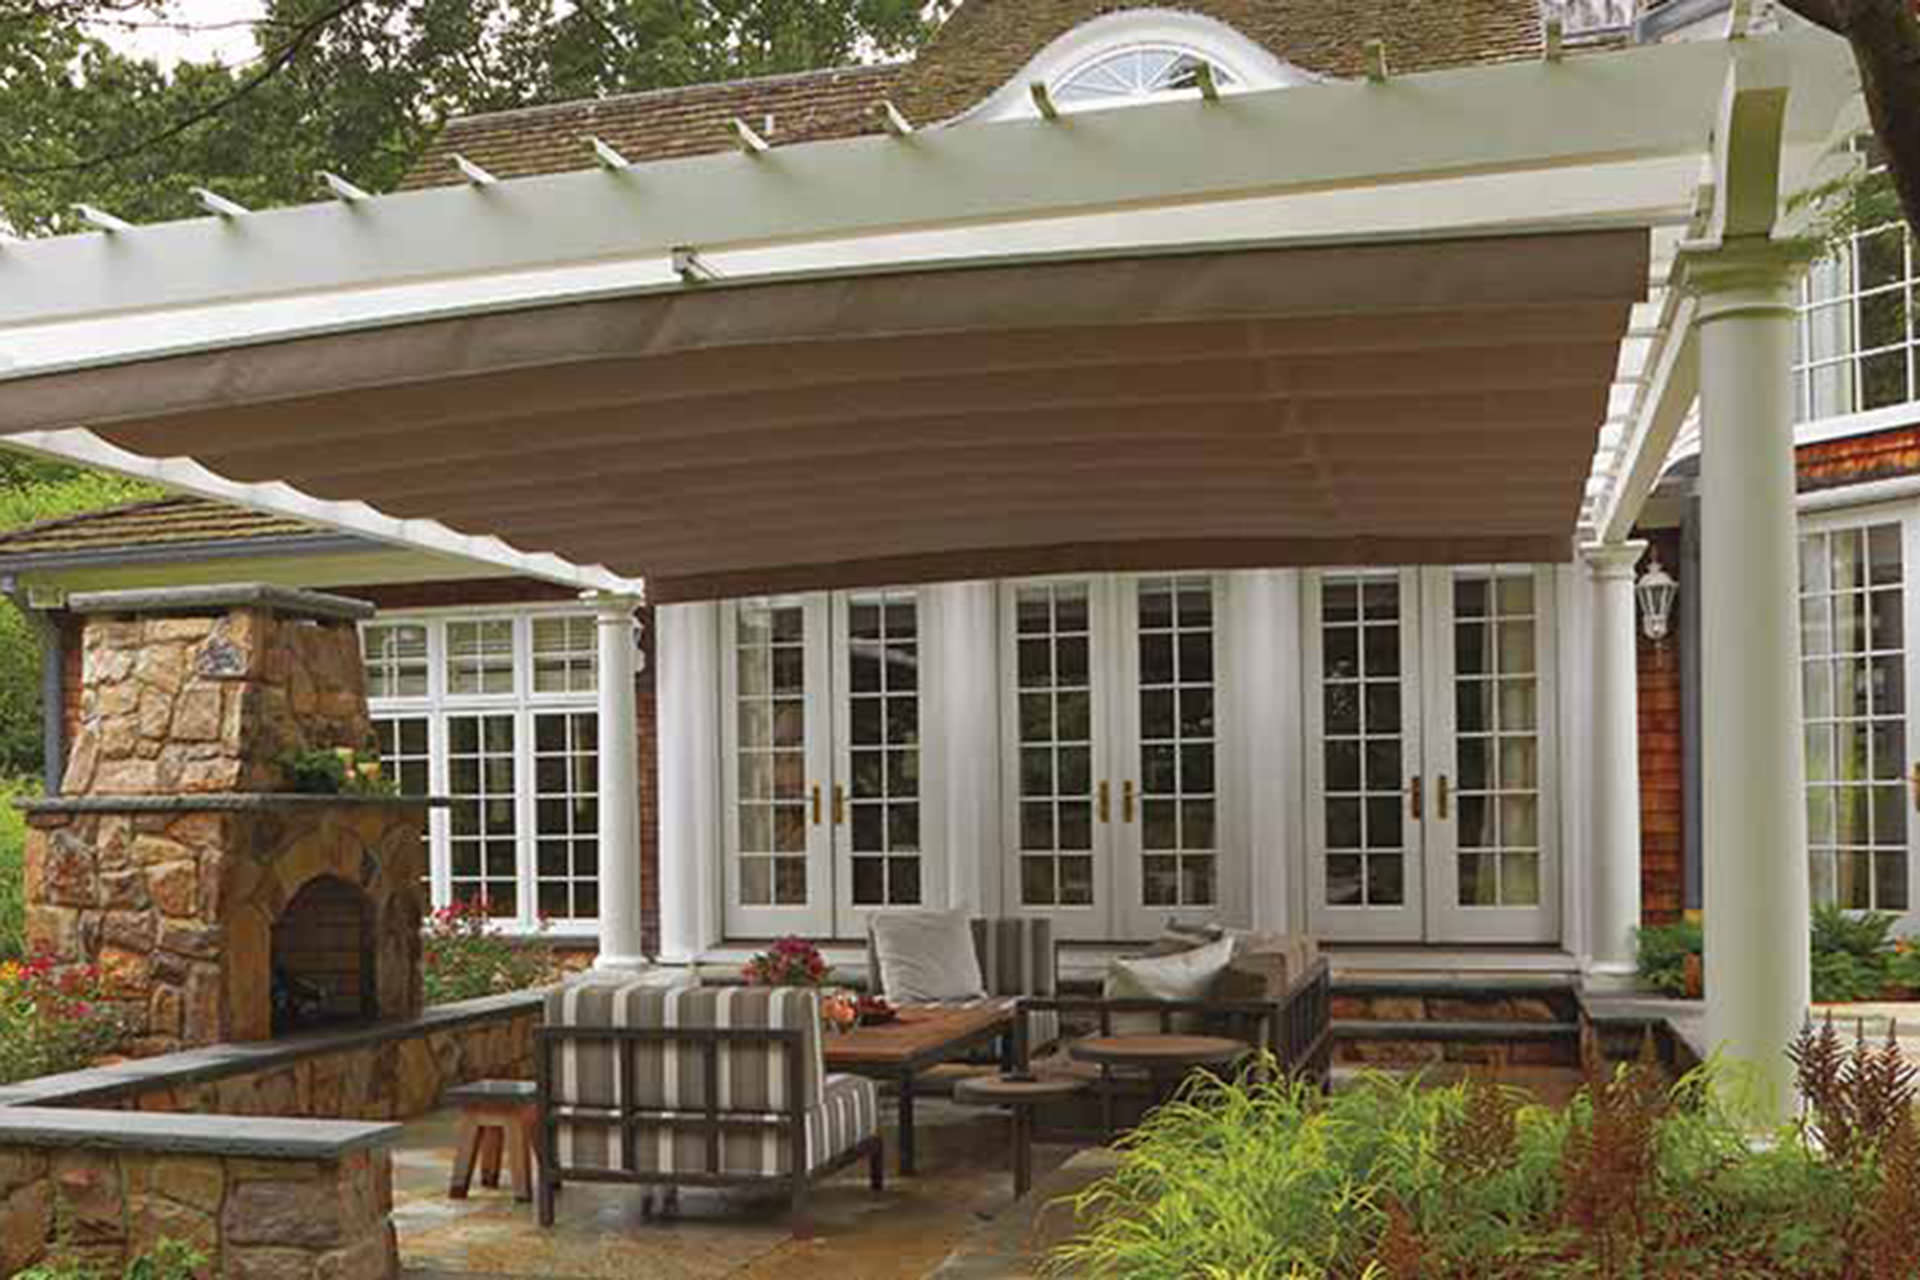 Retractable Canopy Valence